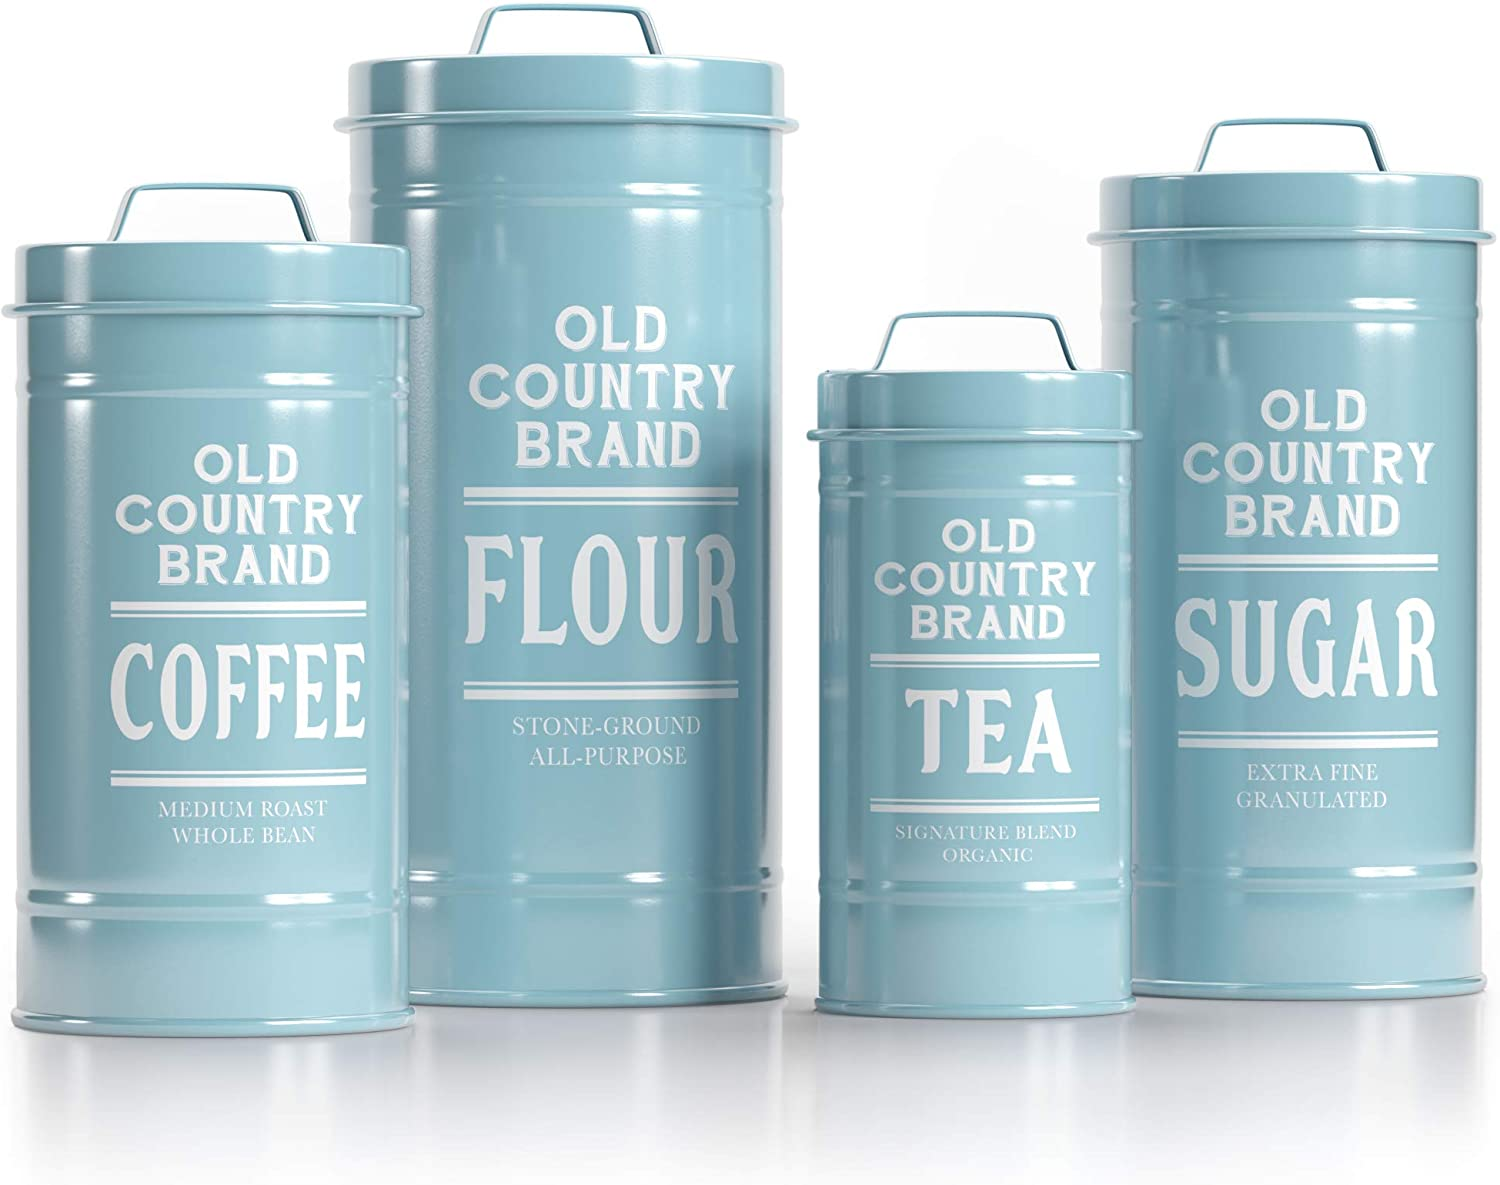 Barnyard Designs Decorative Nesting Kitchen Canister Jars with Lids, Seafoam Blue Metal Rustic Vintage Farmhouse Container Decor for Flour Sugar Coffee Tea Storage, Set of 4, Largest is 5.5